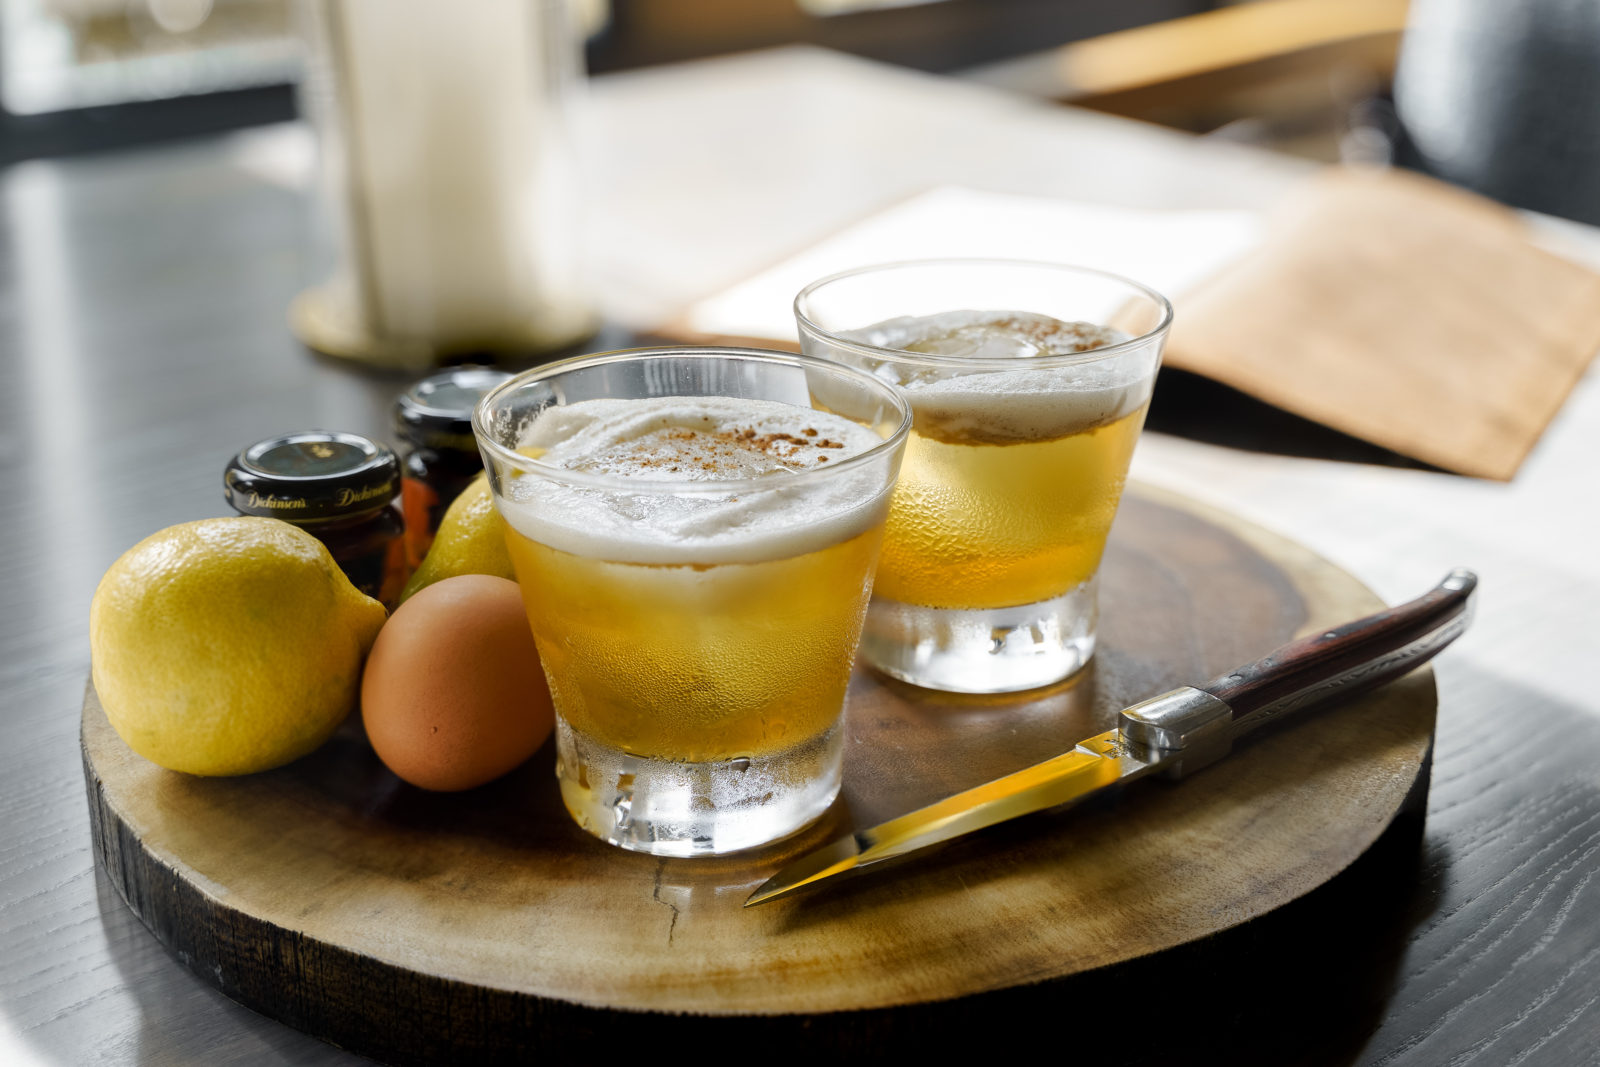 Hemingway's at Hyatt Regency Grand Cypress Maple Whiskey Sour